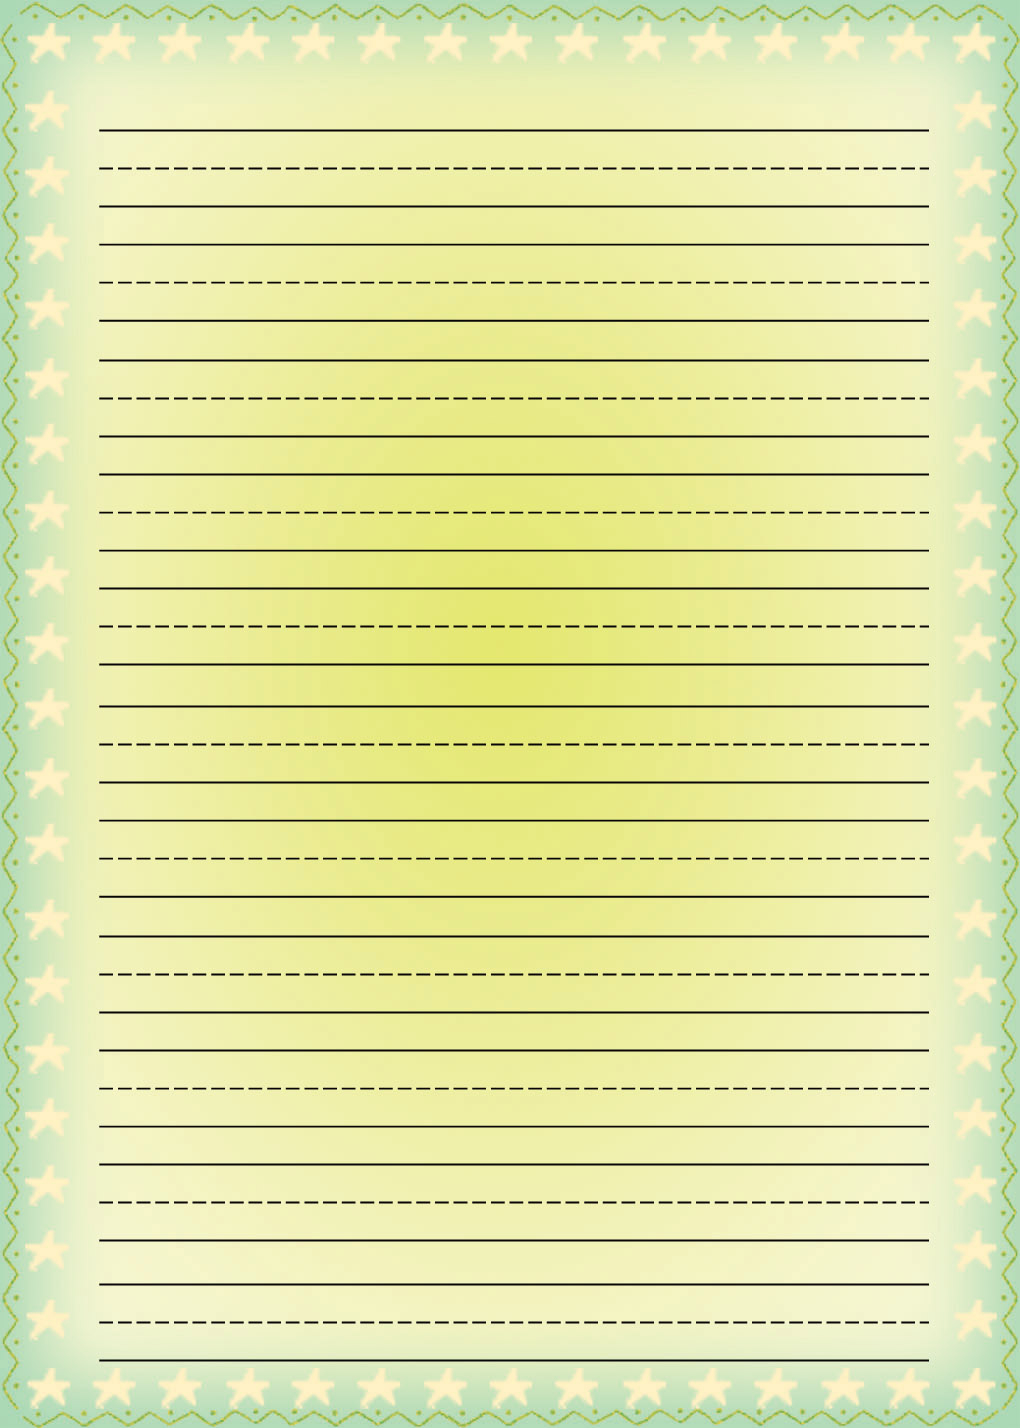 Free Printable Stationery For Kids, Free Lined Kids Writing Paper - Free Printable Lined Stationery